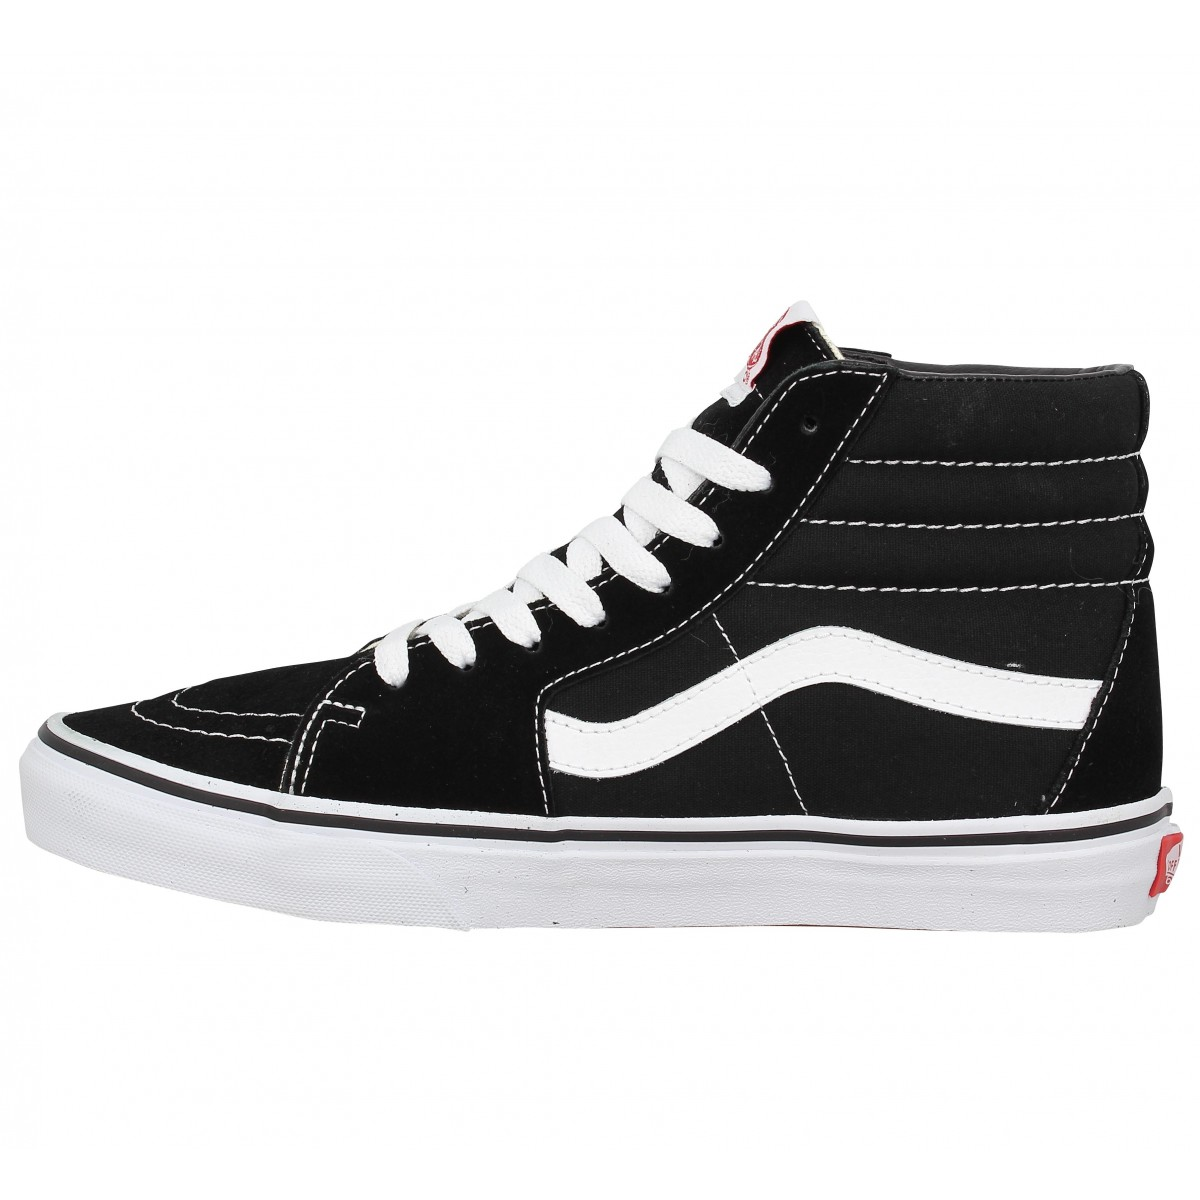 soldes vans sk8 hi noir homme fanny chaussures. Black Bedroom Furniture Sets. Home Design Ideas